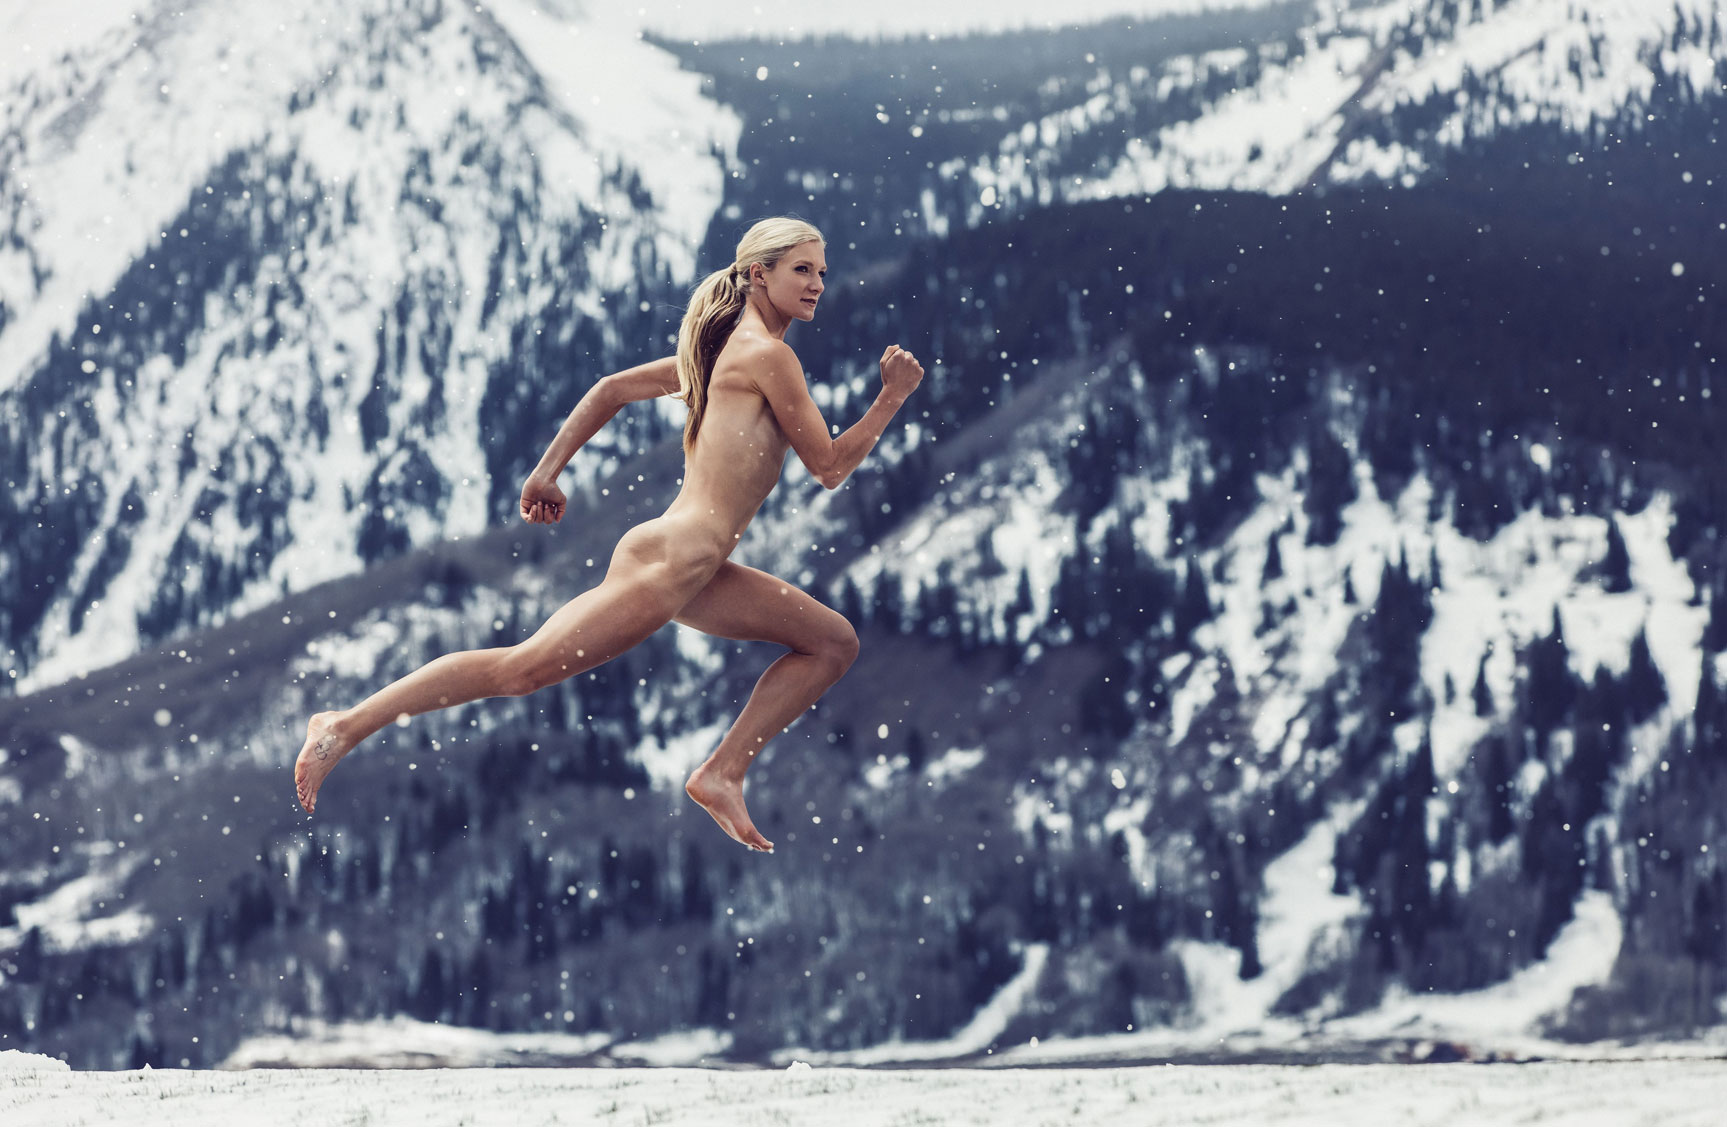 ESPN Magazine The Body Issue 2016 - Emma Coburn / Эмма Коберн - Культ тела журнала ESPN